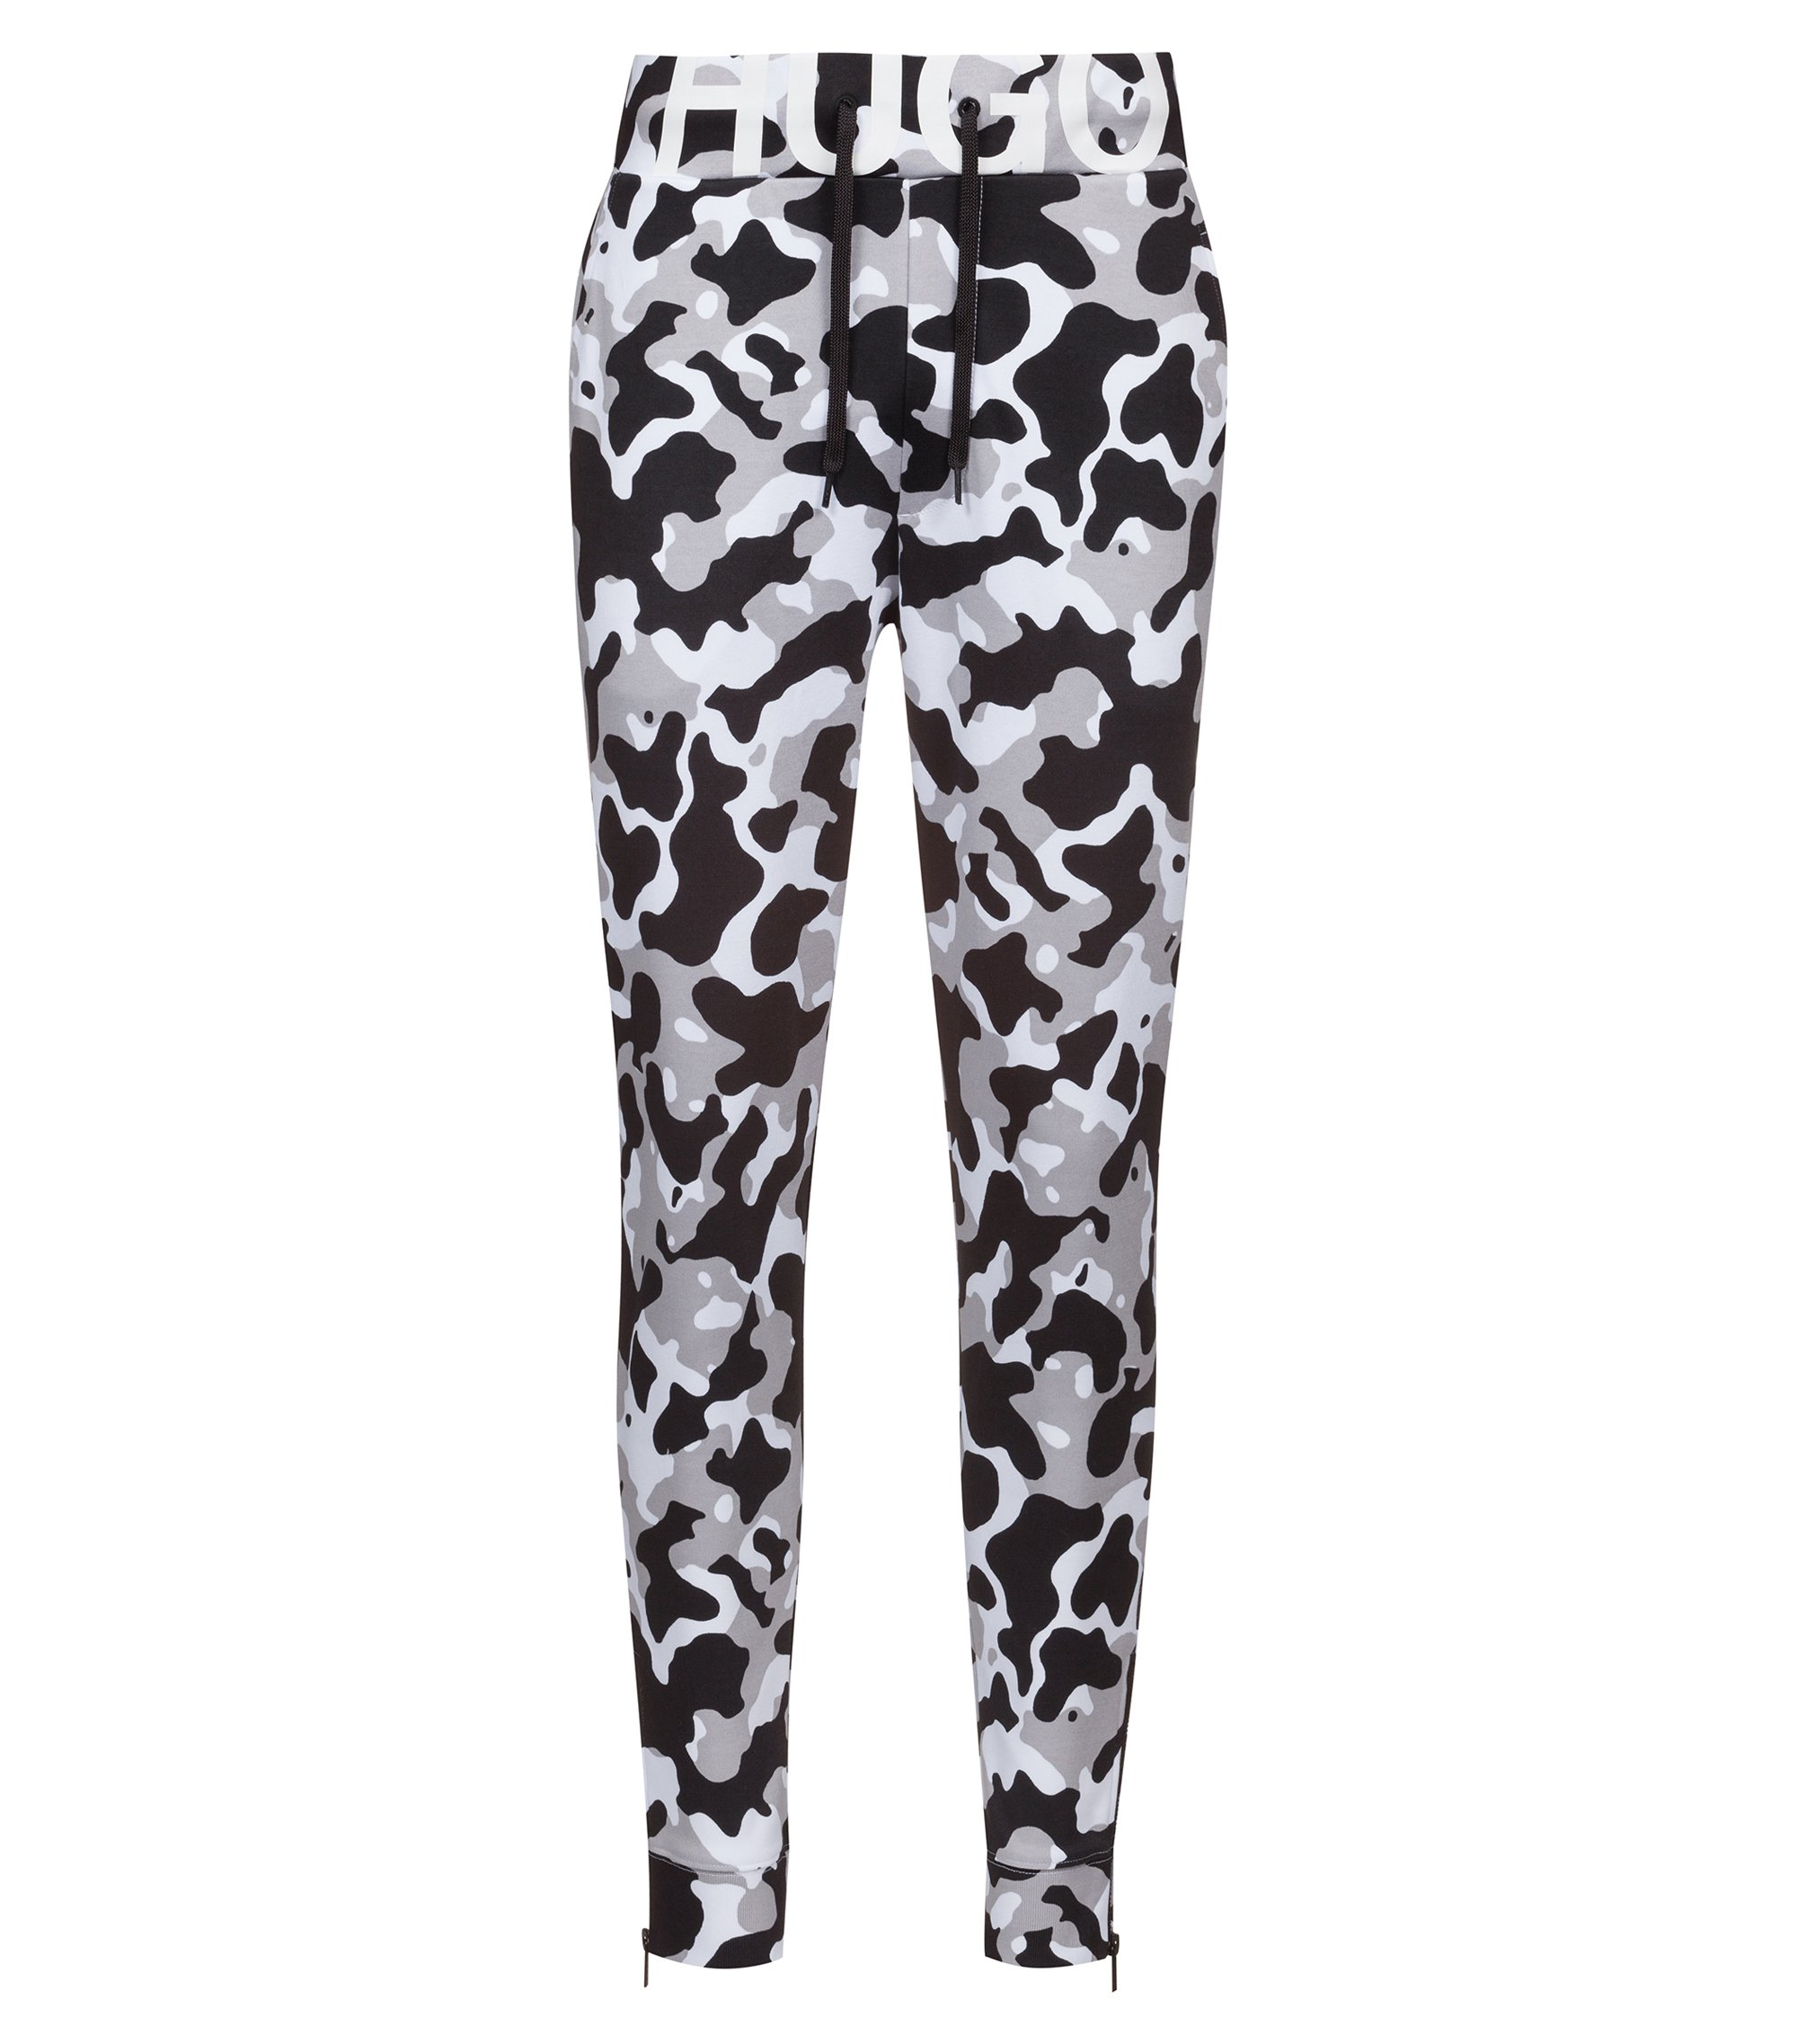 Jersey trousers in camouflage-print interlock cotton, Patterned